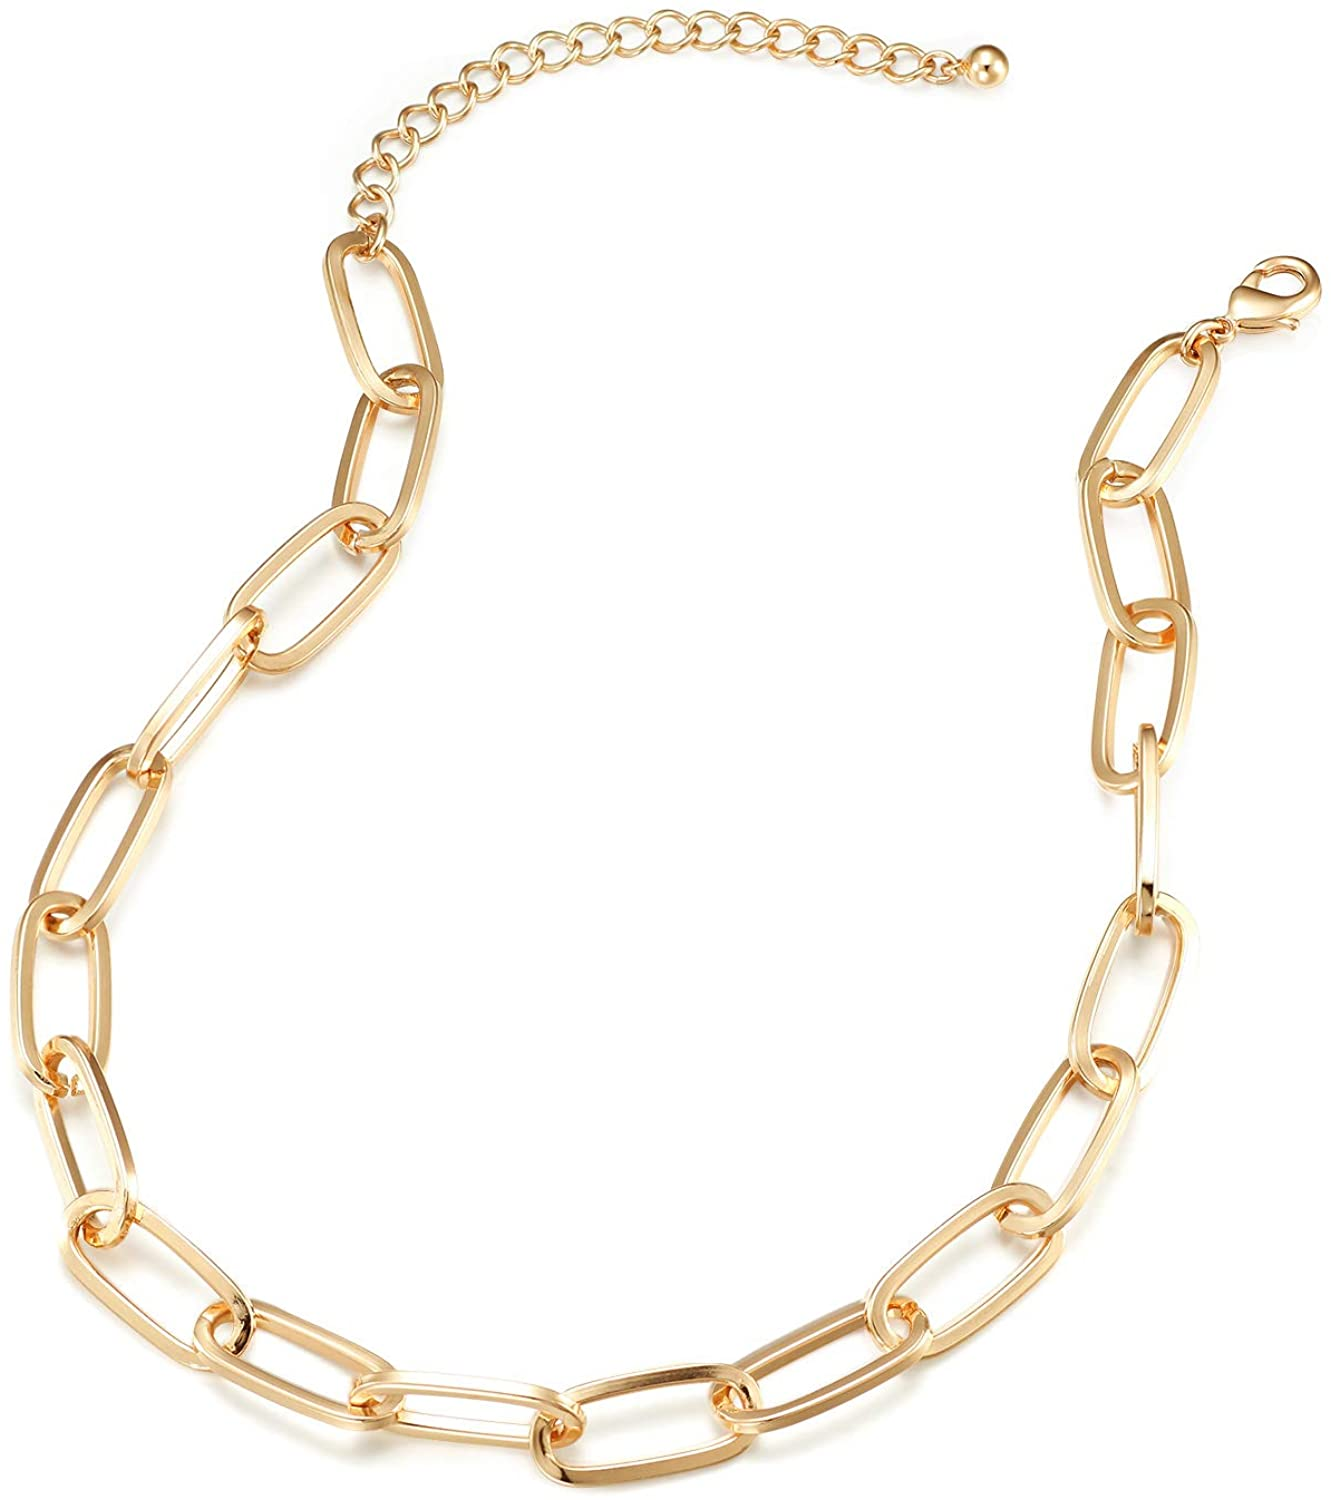 LANE WOODS Gold Chain Necklace and Bracelet for Women Ladies Dainty and Chunky Chain Link Paperclip Jewelry Set